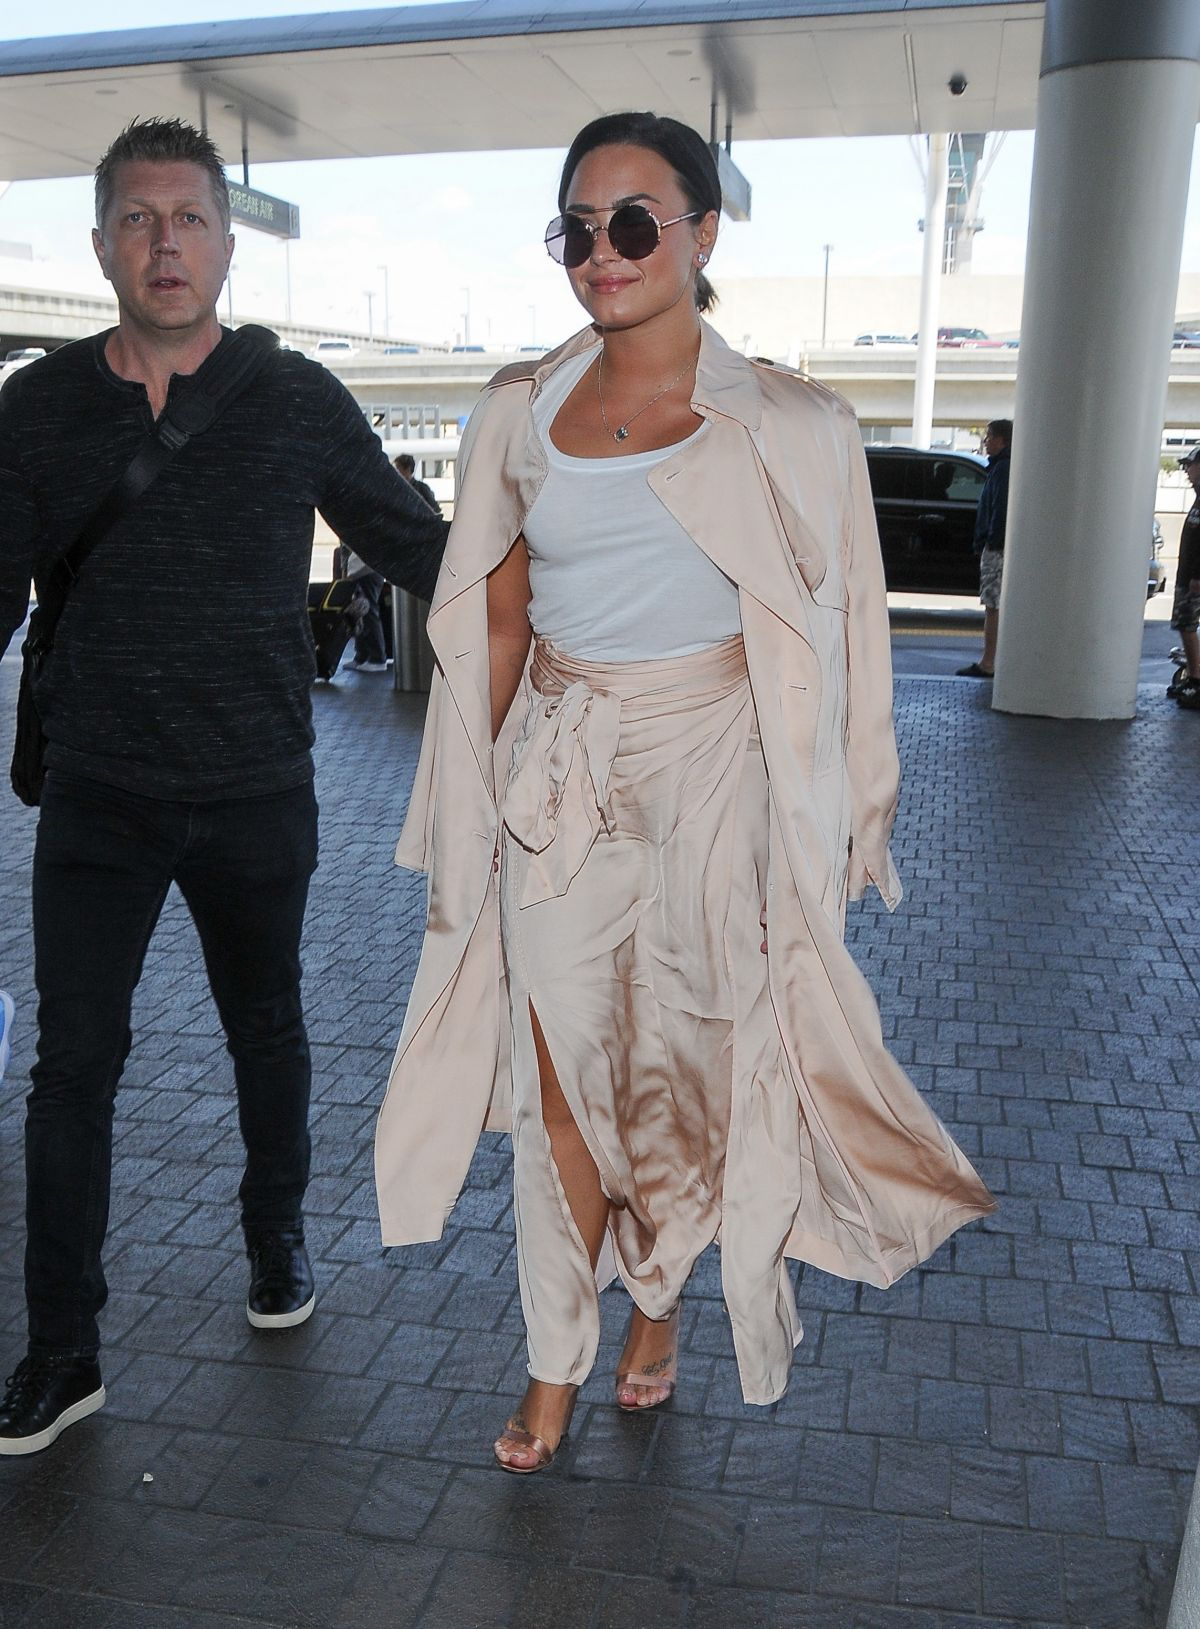 DEMI LOVATO at LAX Airport in Los Angeles 05/16/2017